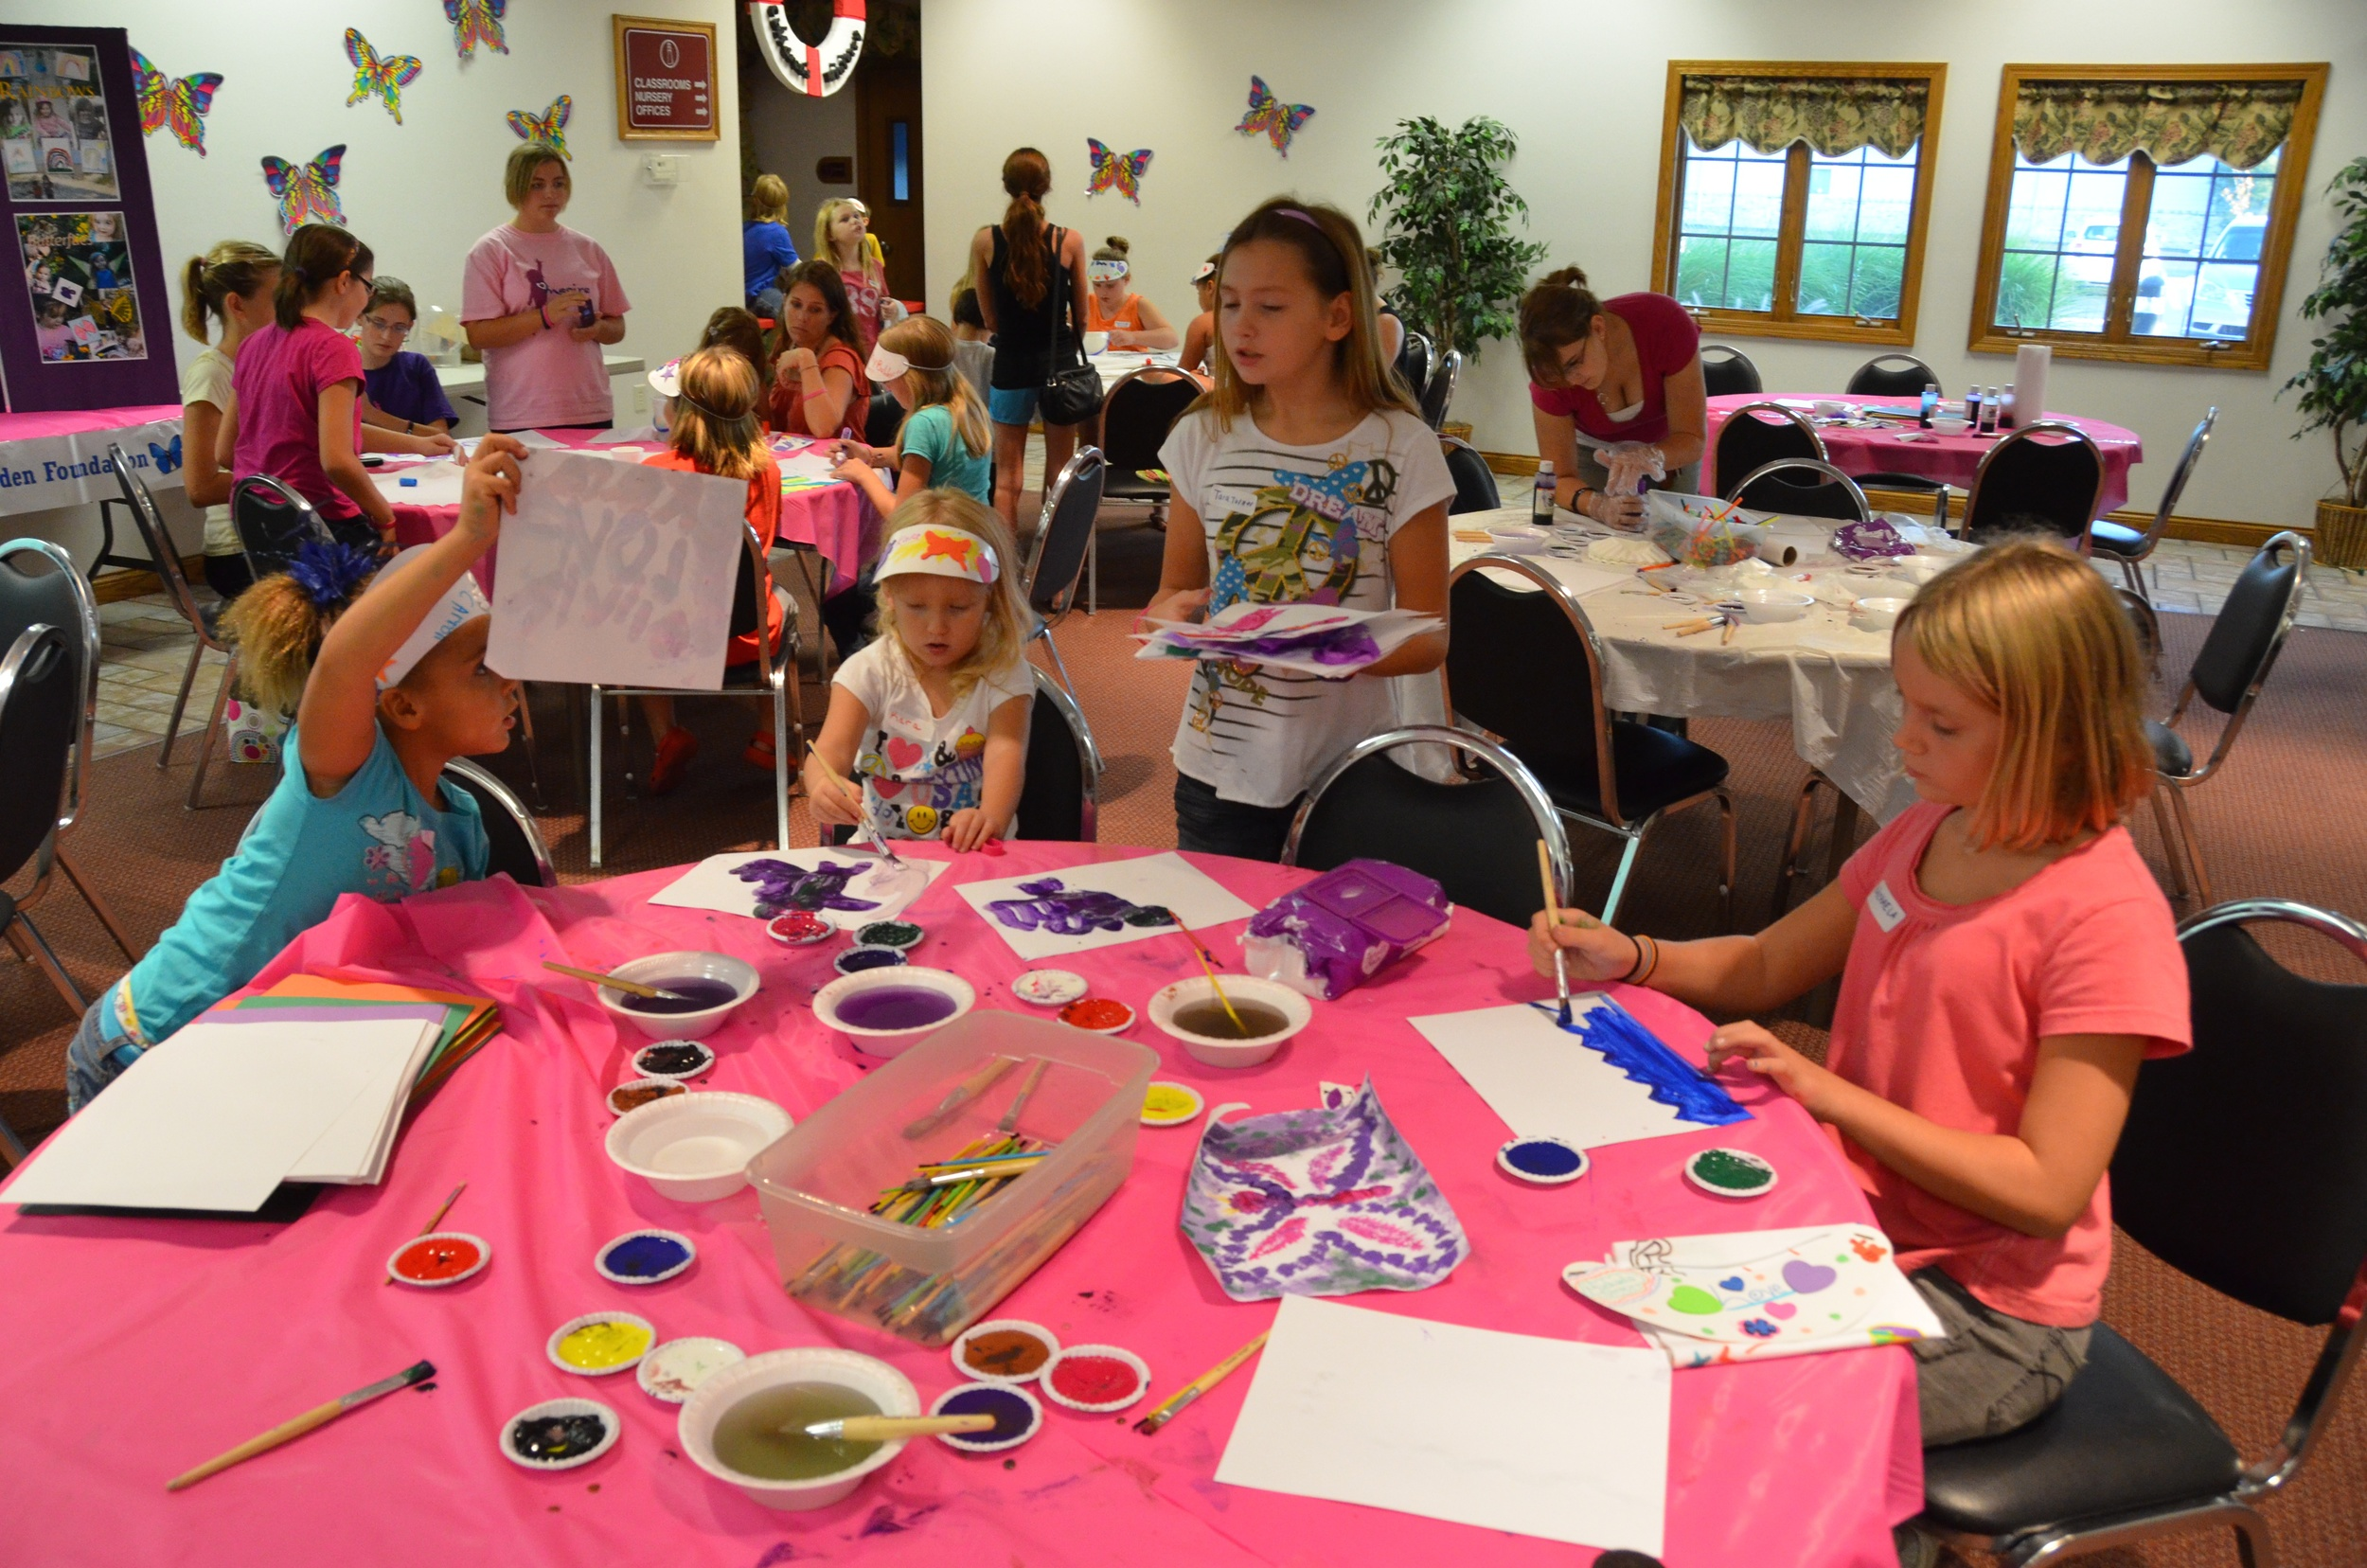 KIds ARt Church 9 12 2011   95330.jpg